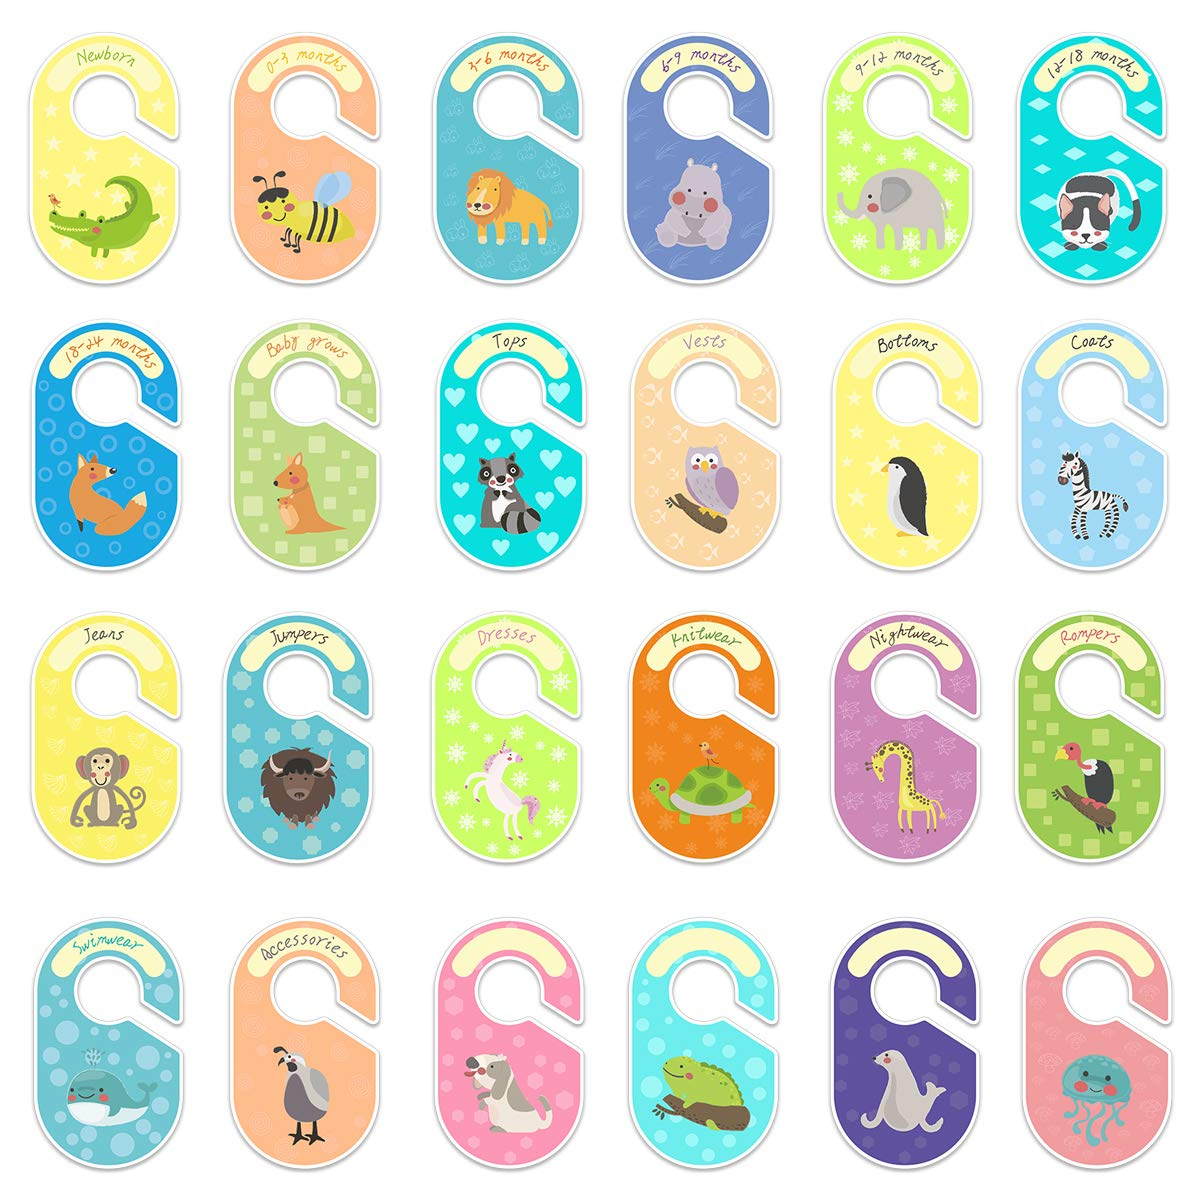 MOBU 24 pcs Baby Closet Dividers Double Side Baby Wardrobe Dividers Baby Shower Gift Arrange Clothes by Clothing Type /& Age Unisex Closet Organisers//Hangers Dividers for Baby Kids Gift Packing